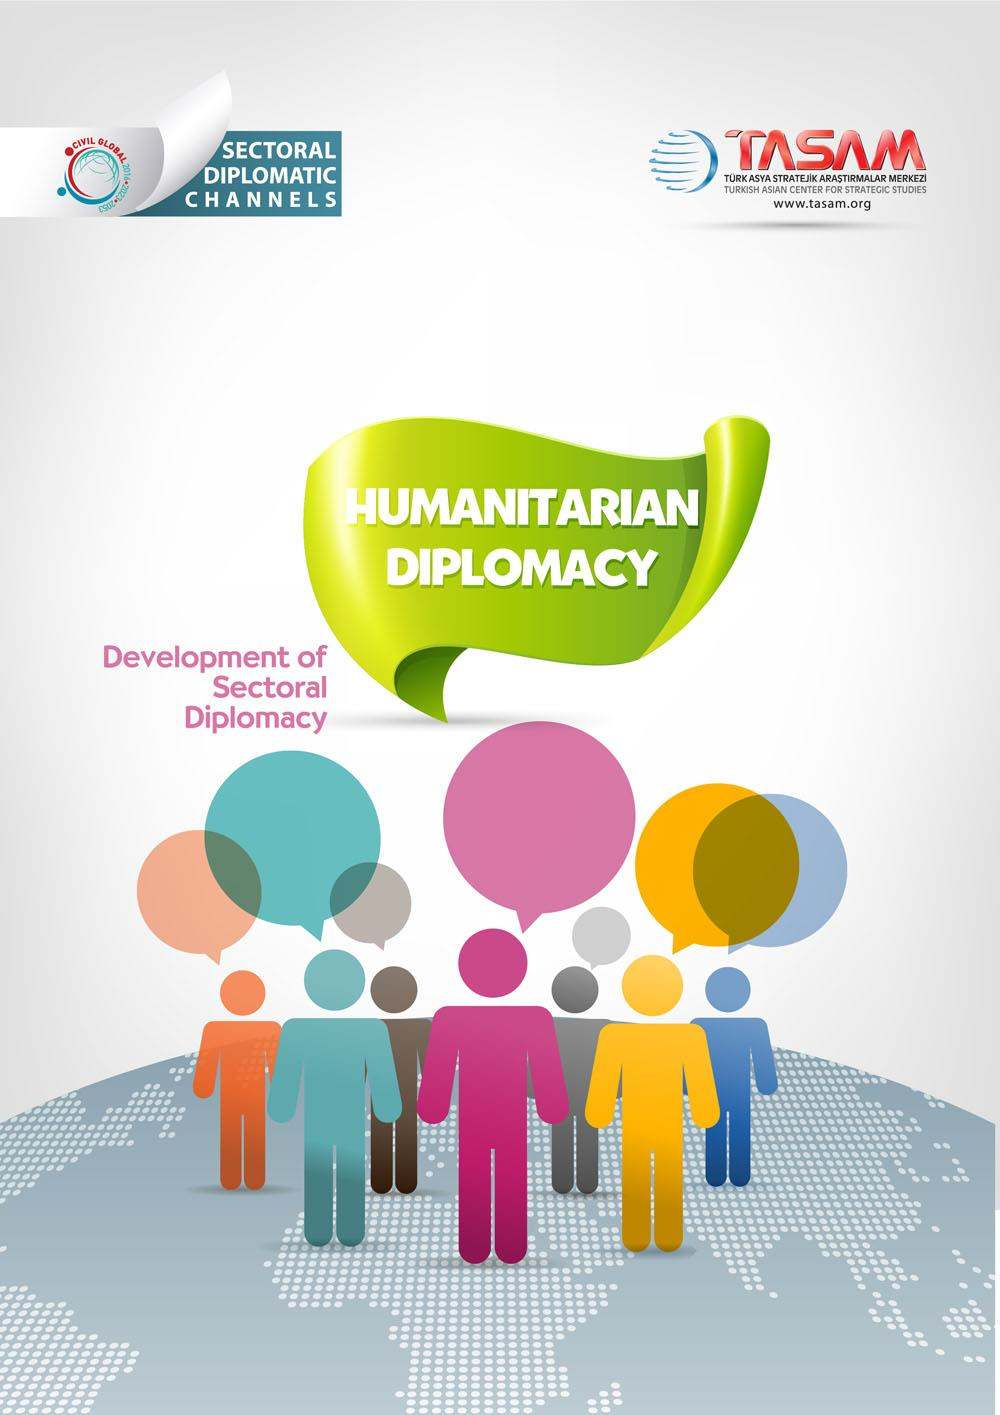 Humanitarian Diplomacy Workshop